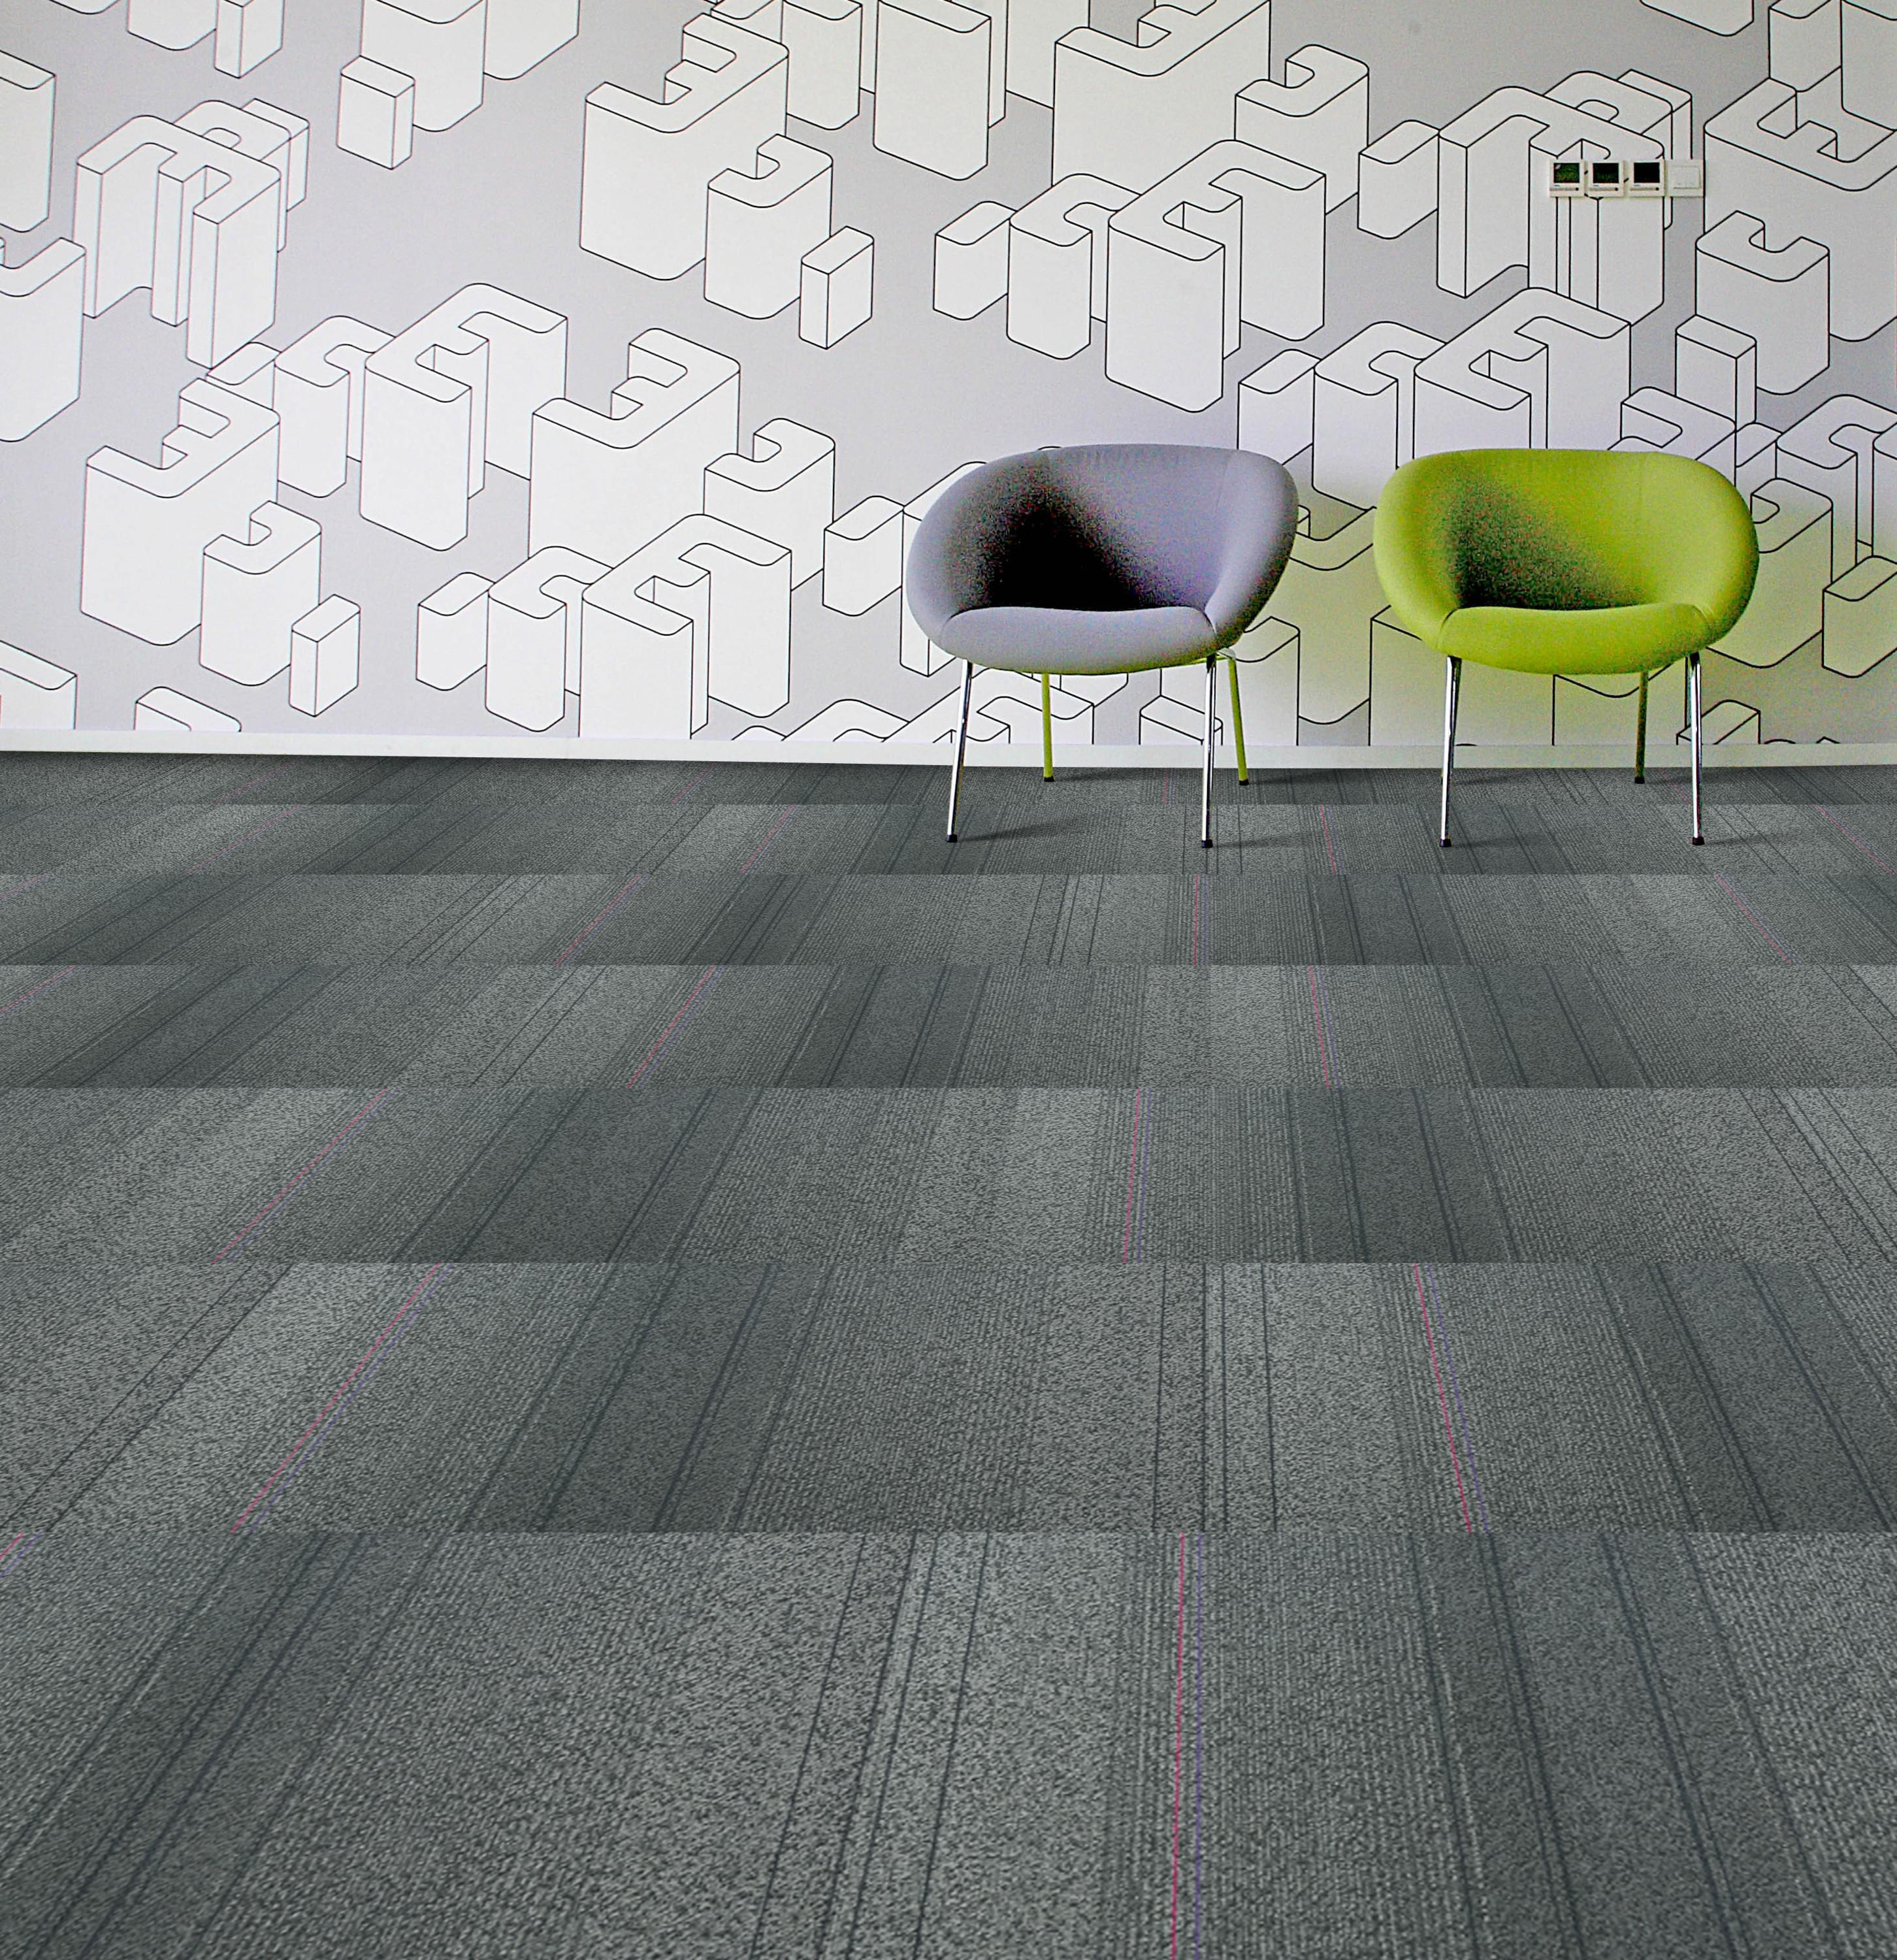 Grey Carpet Tiles Grey Squares Polypropylene Material Michigan Whilesale All Flooring Now 16 oz